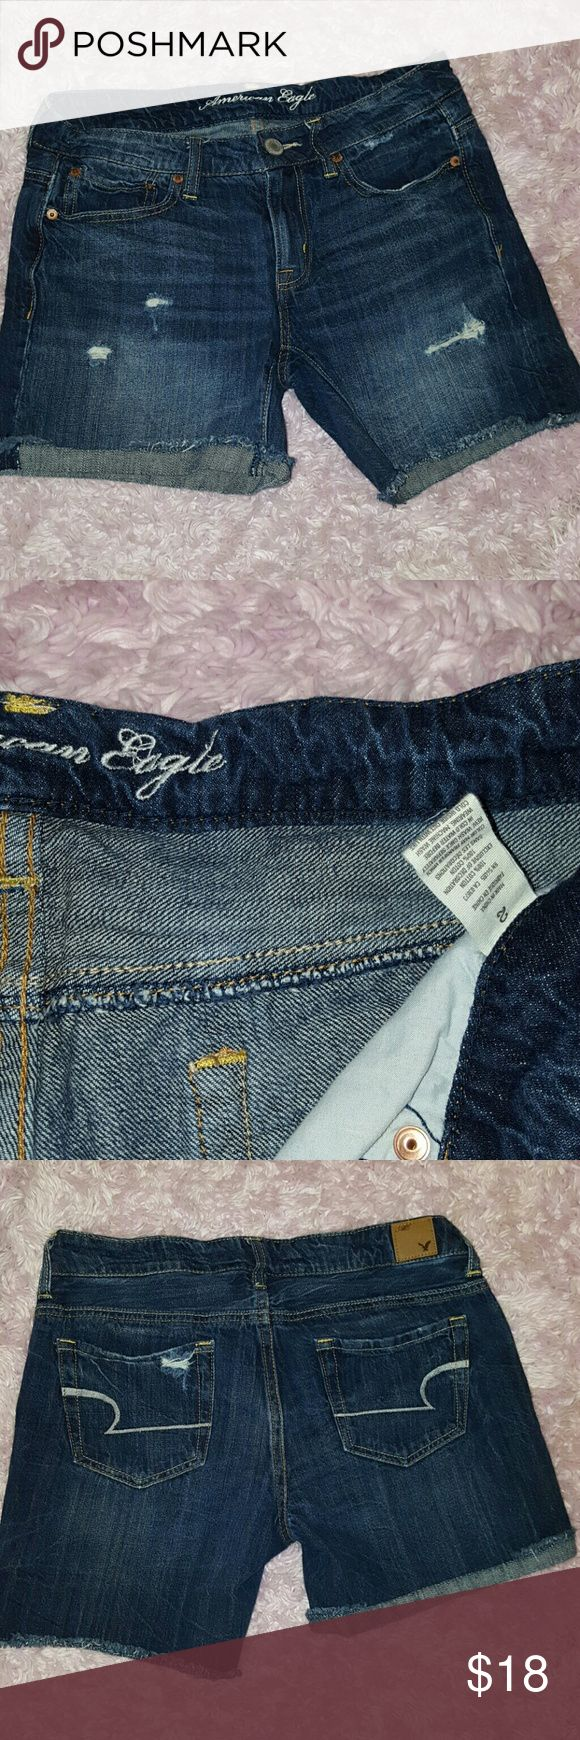 American Eagle Jeans Shorts Wear Cuffed or Down Size 2 1~ 100% cotton ~  Semi Destroyed look. Perfect pair of shorts, only wore once for a few hours. American Eagle Outfitters Shorts Jean Shorts